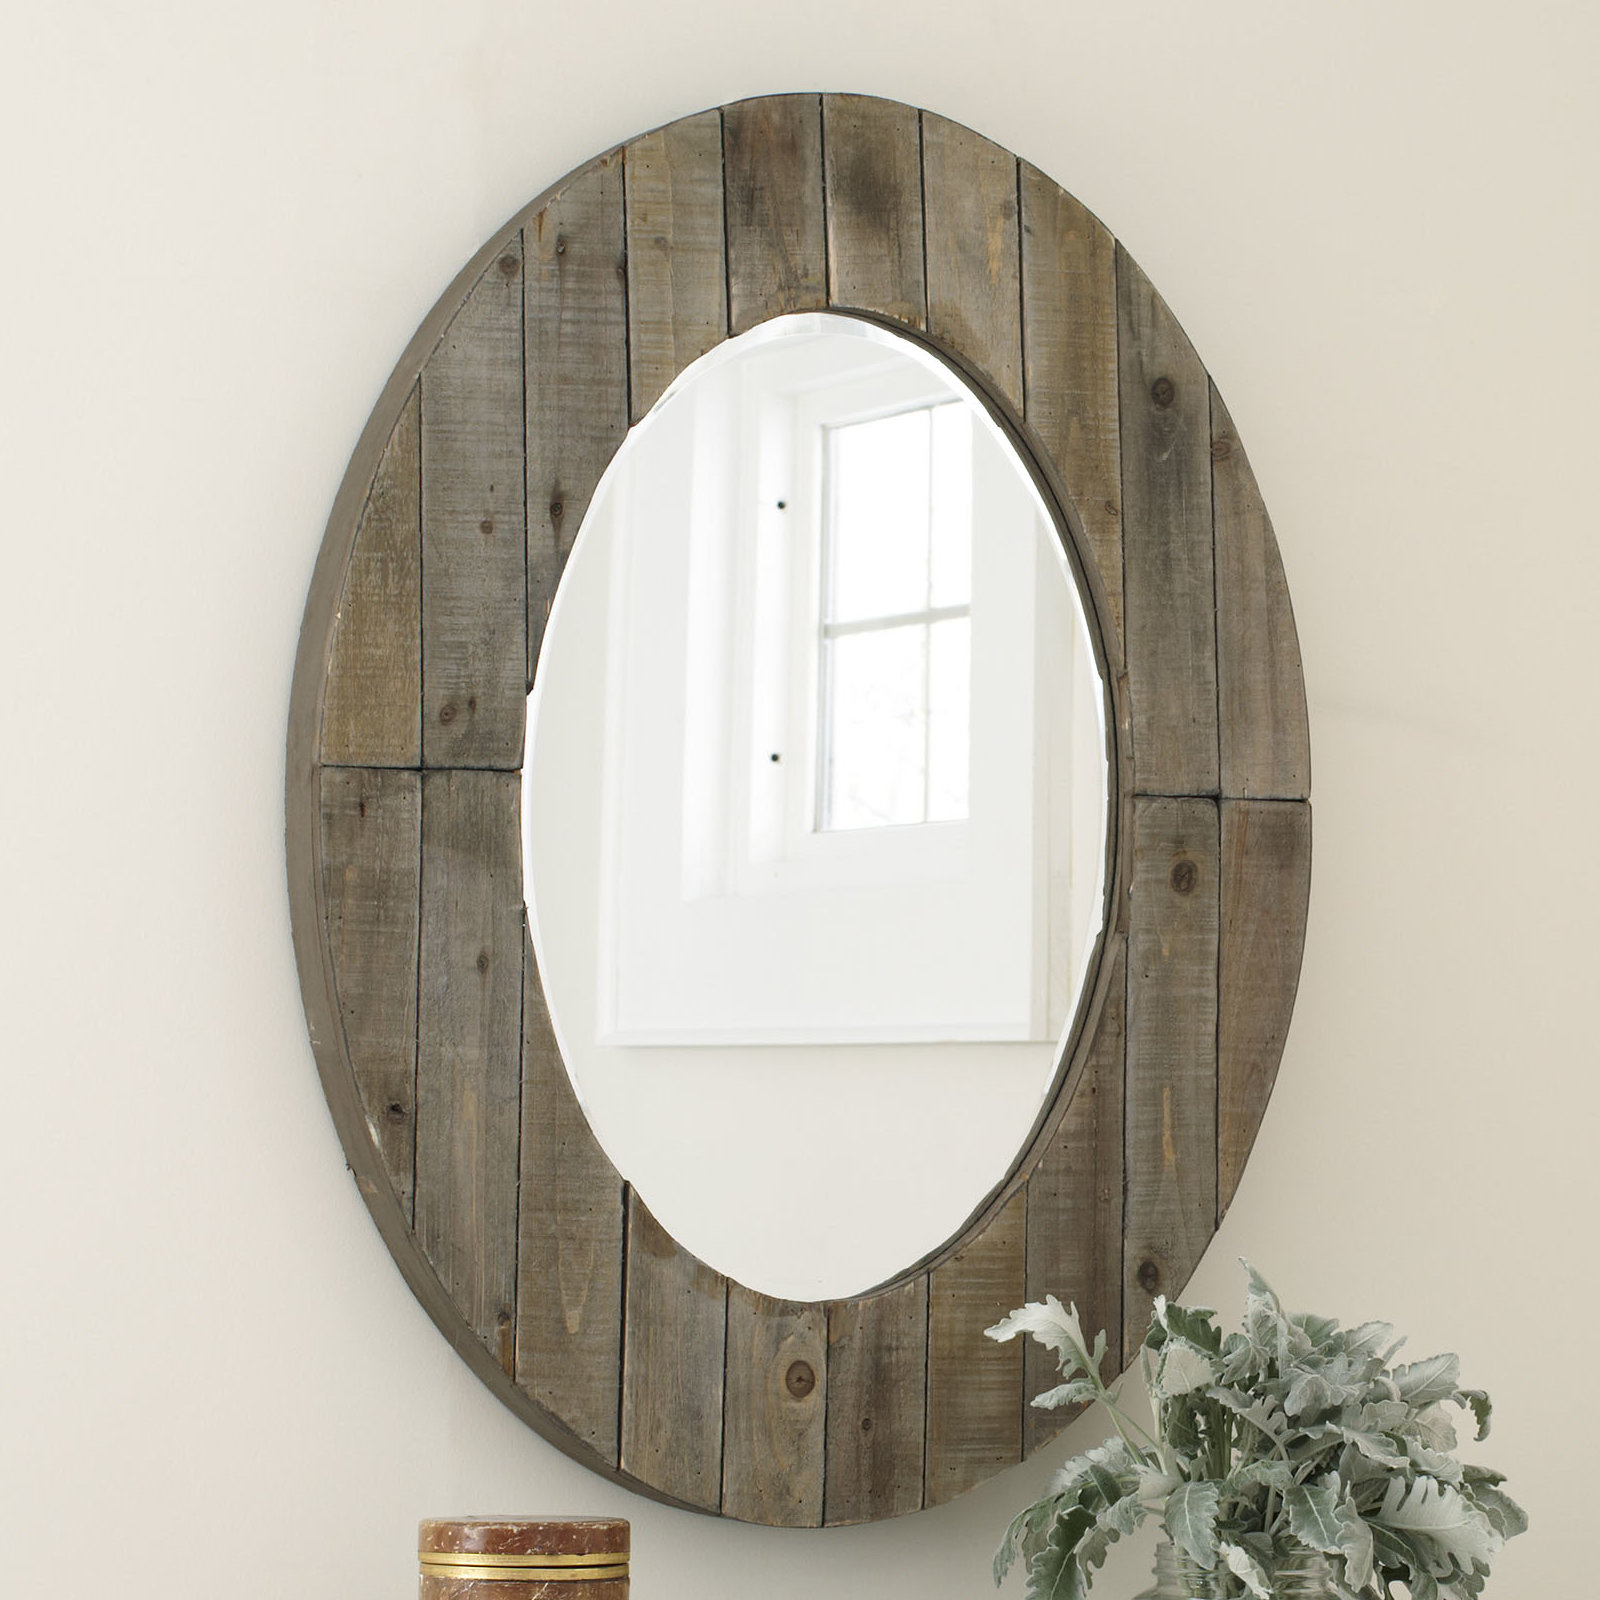 2019 Newson Oval Wall Mirror In Booth Reclaimed Wall Mirrors Accent (View 10 of 20)